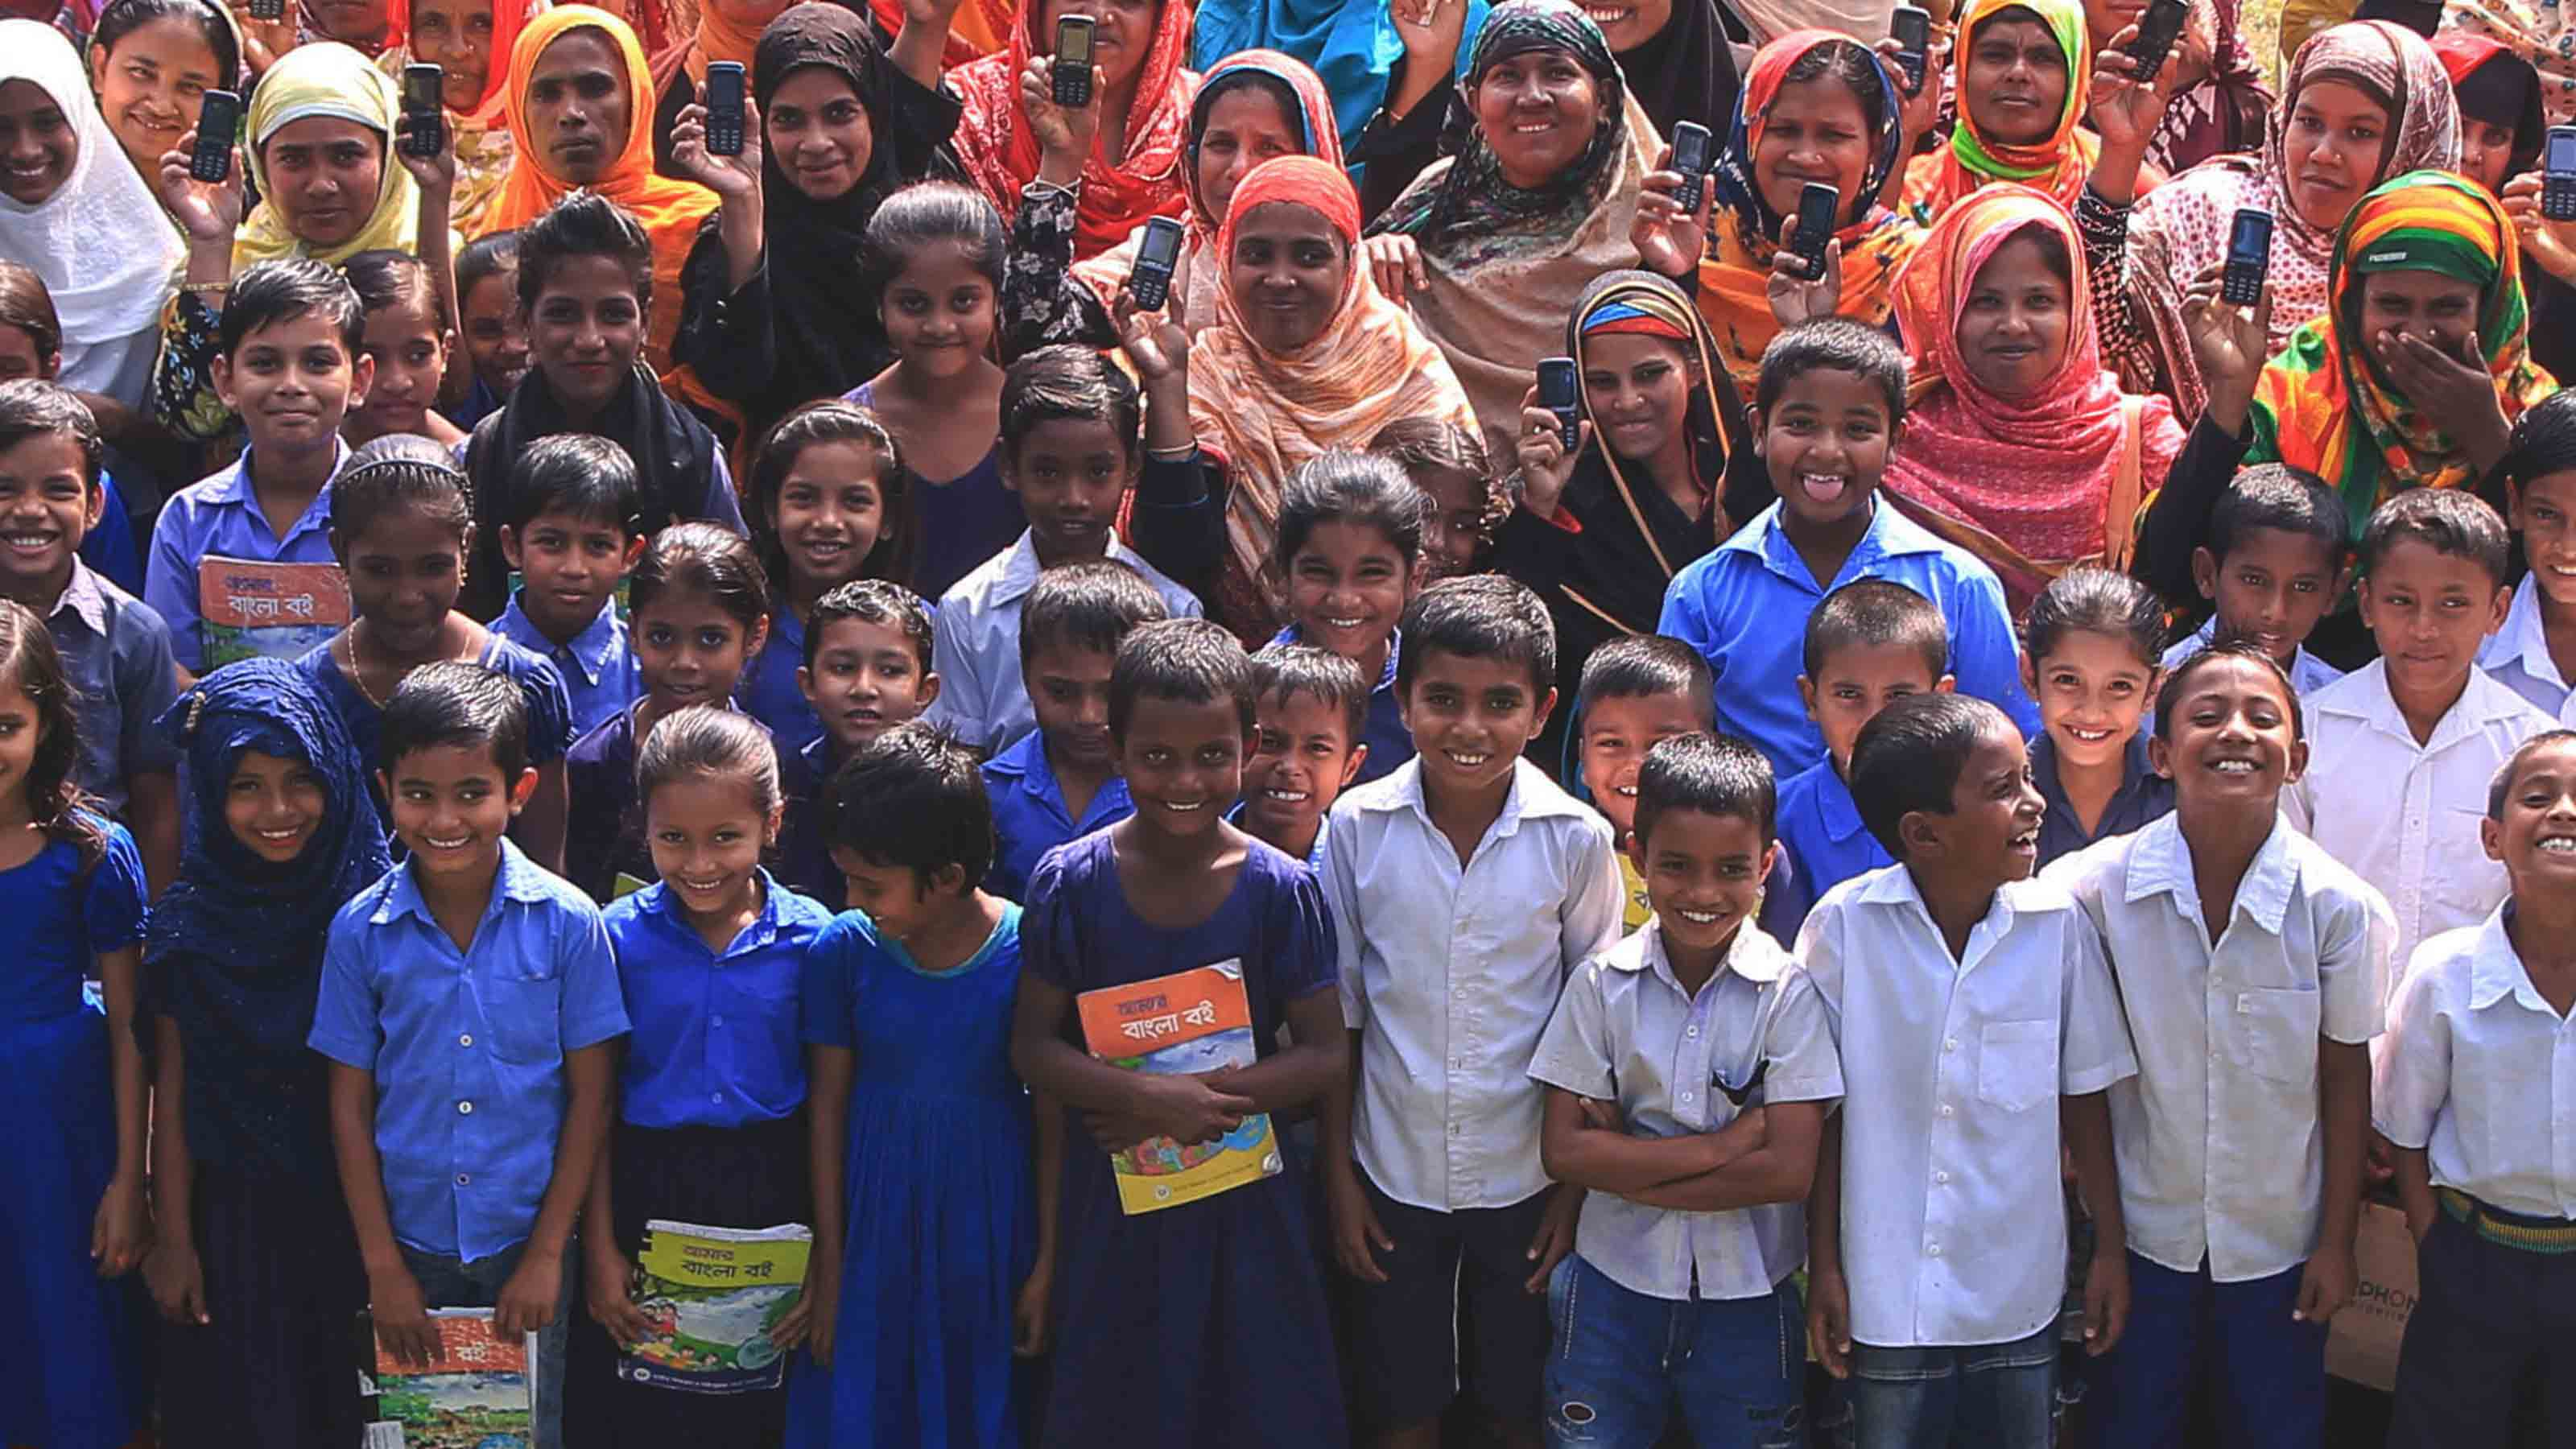 Group photo with children from Bangladesh